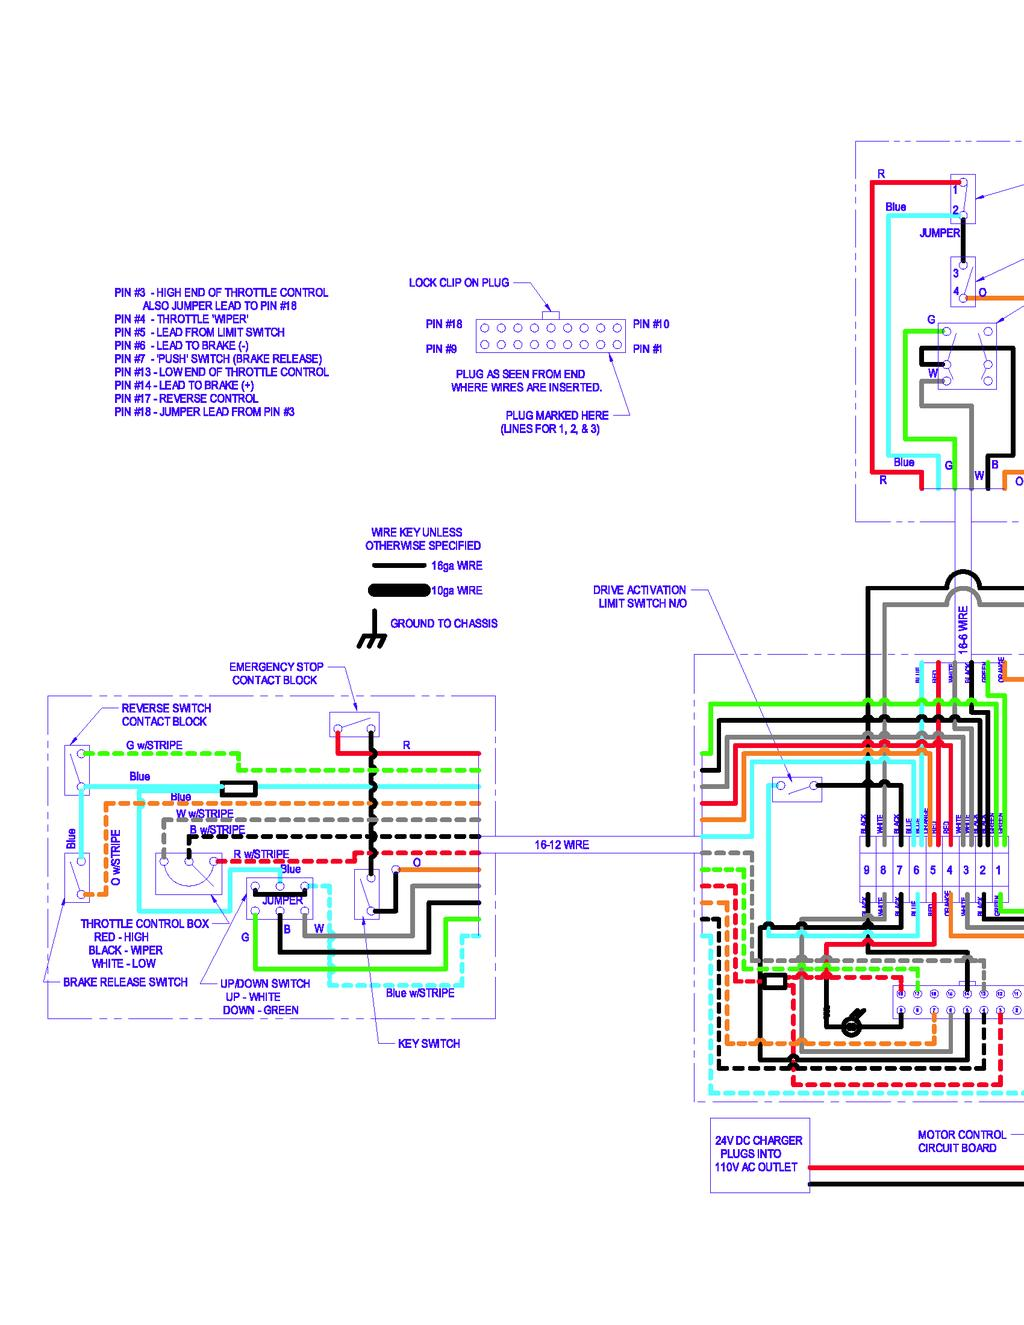 Low boy 2 n 1 mausoleum lift owner s manual safety operation and evision greentooth Choice Image